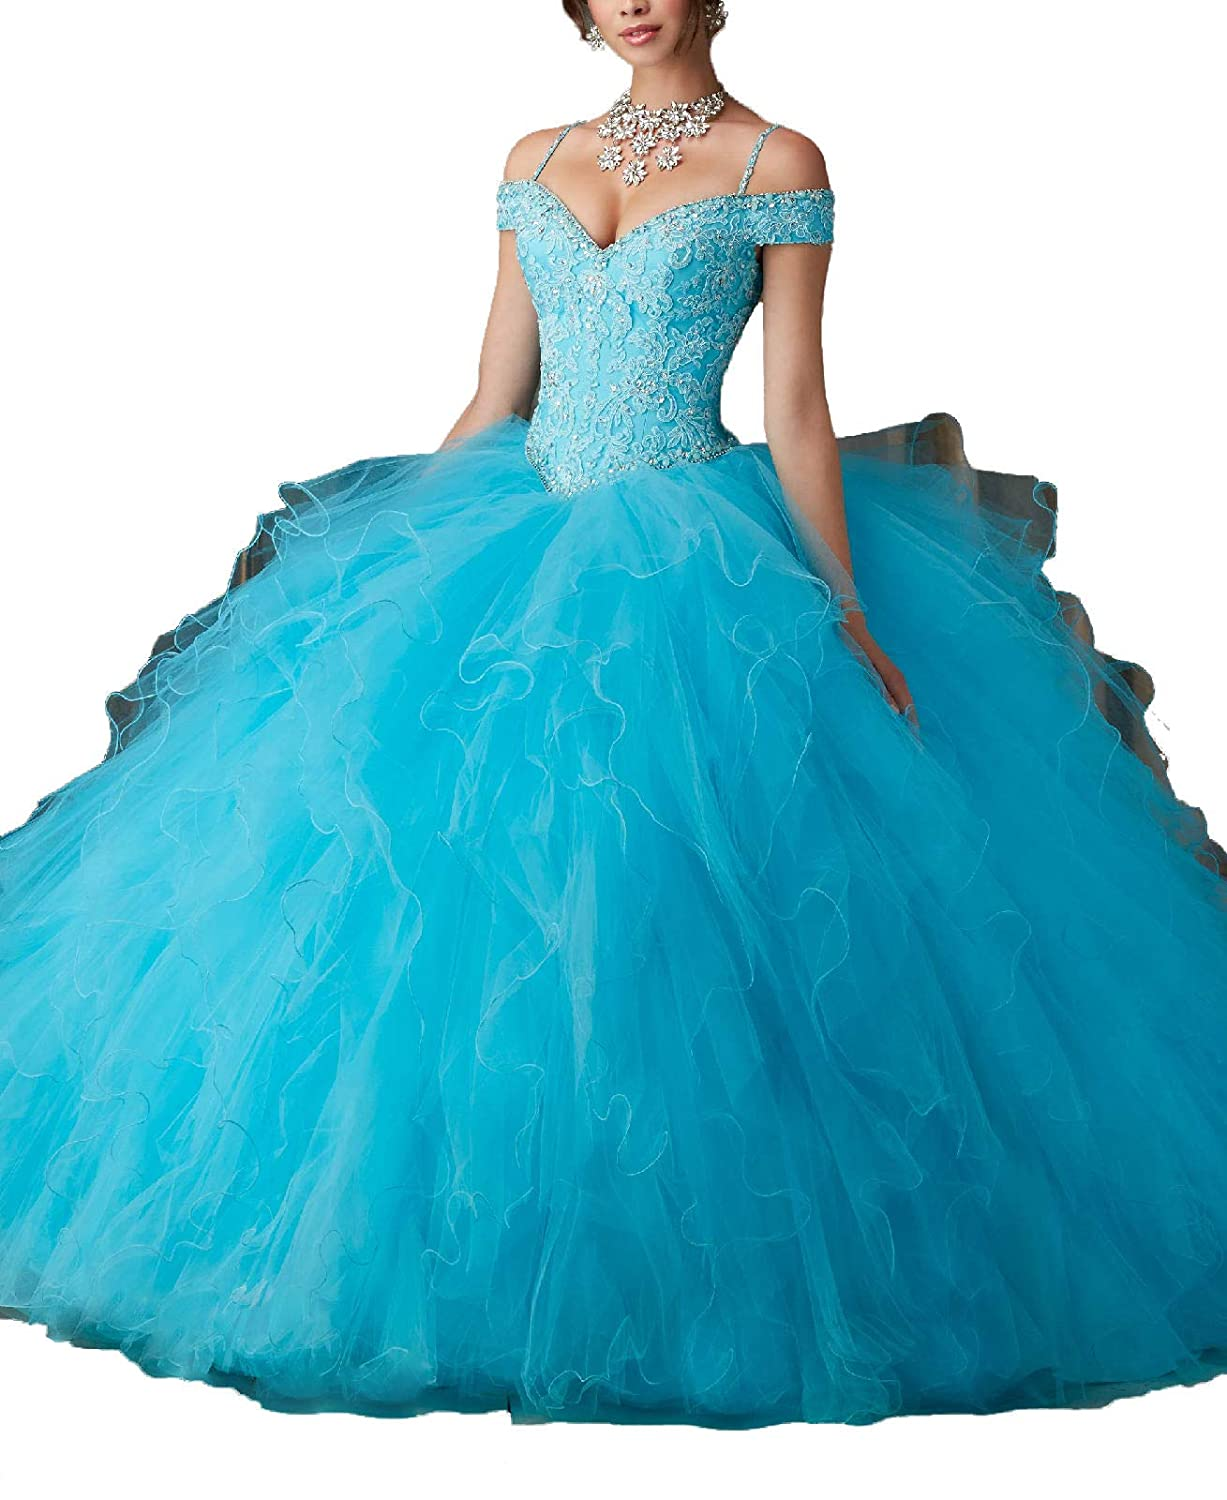 bluee Yisha Bello Women's Off The Shoulder Lace Applique Beaded Evening Ball Gowns Ruffles Quinceanera Dresses